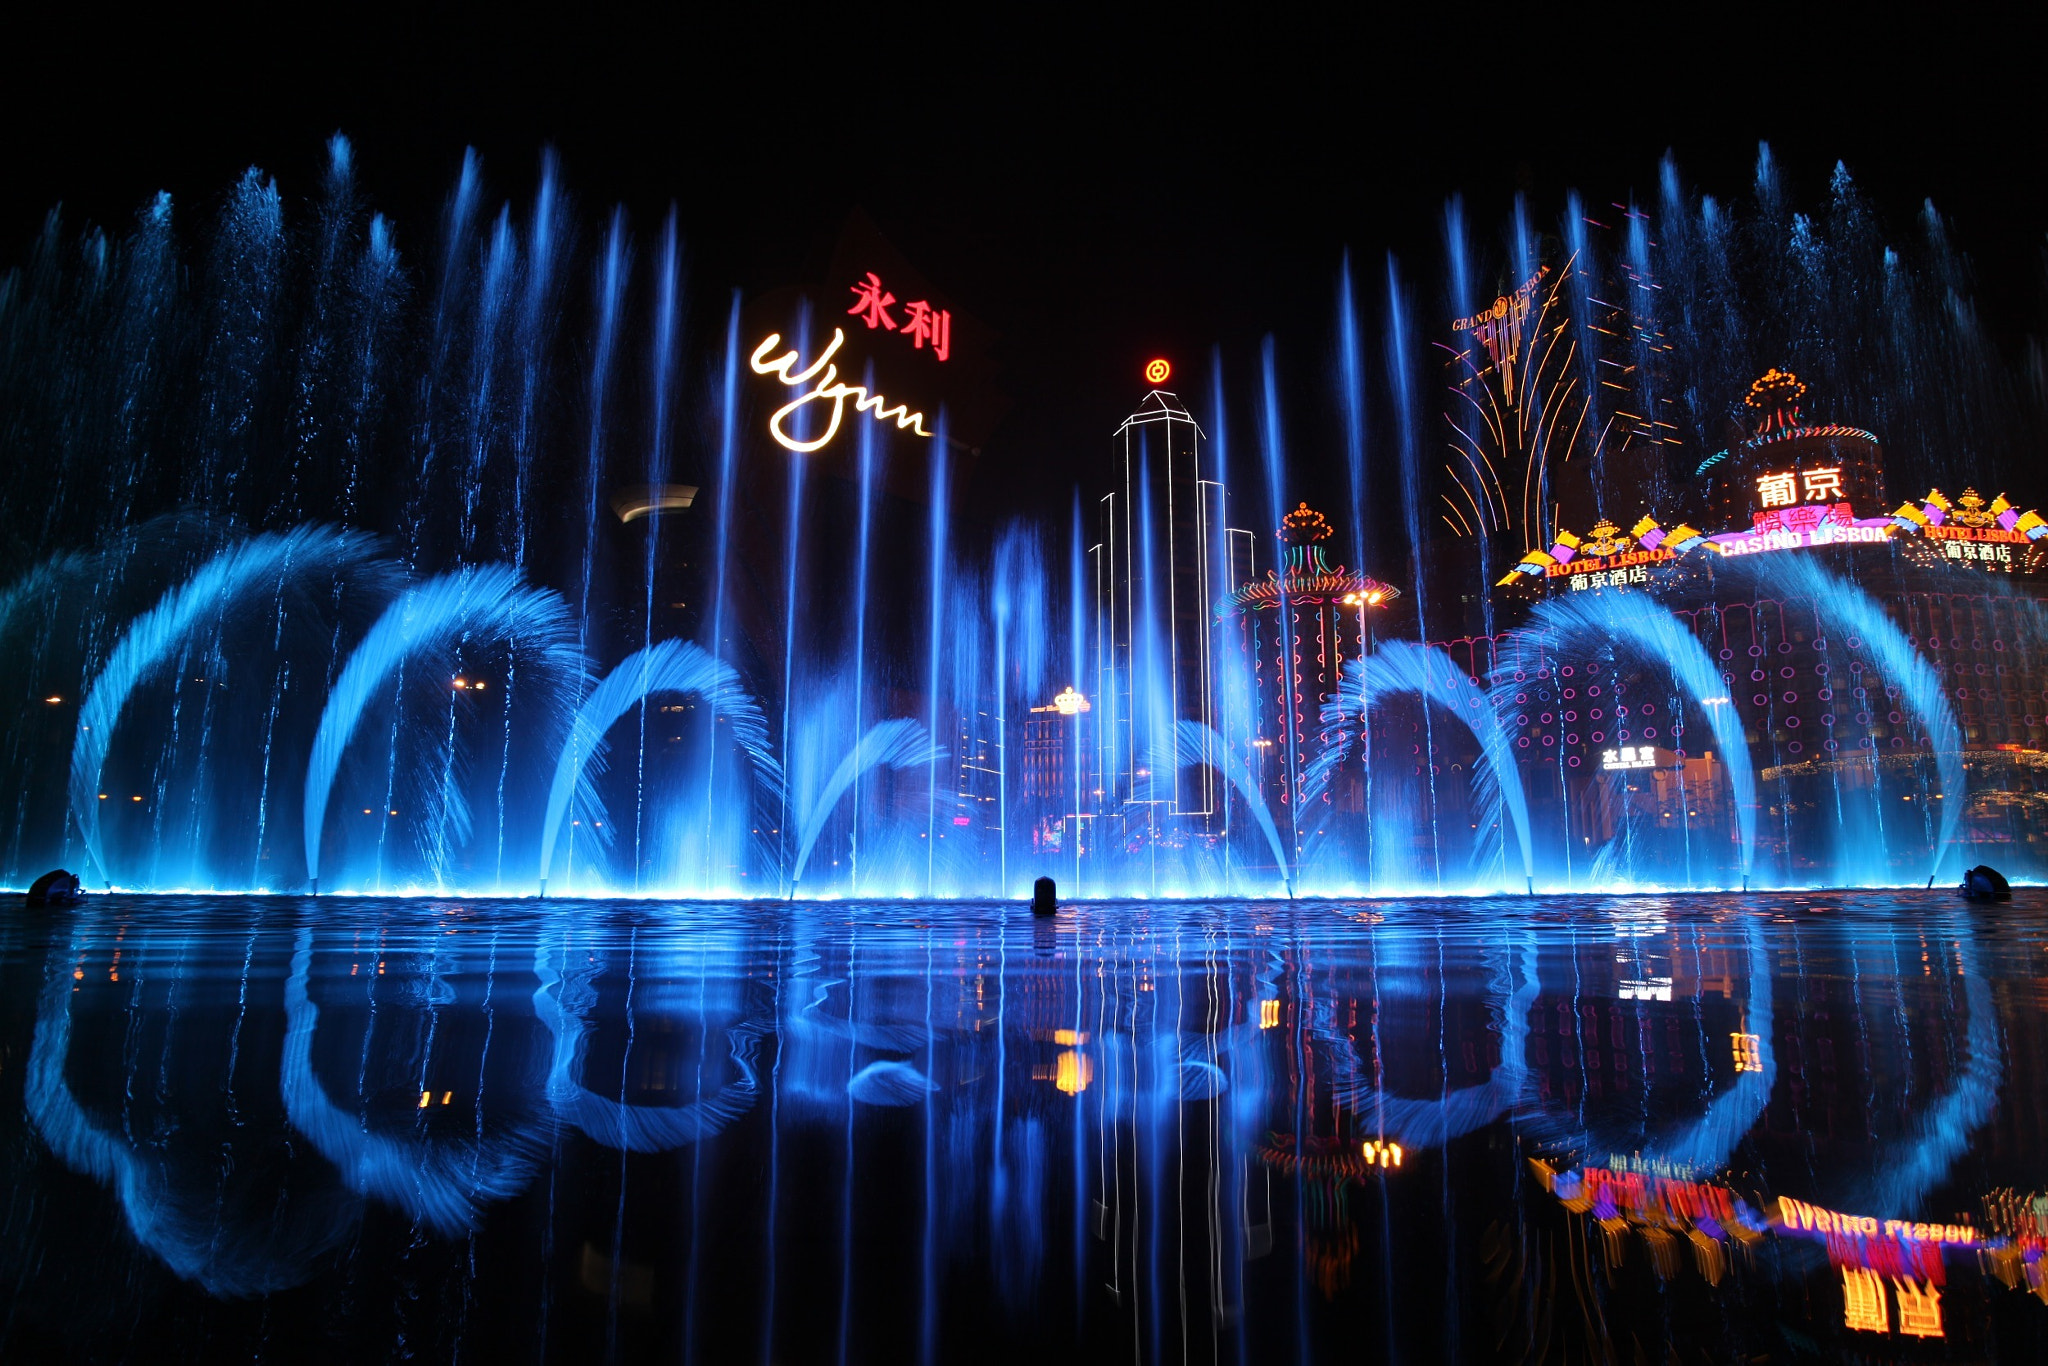 Photograph Wynn Casino by Rio Akasaka on 500px